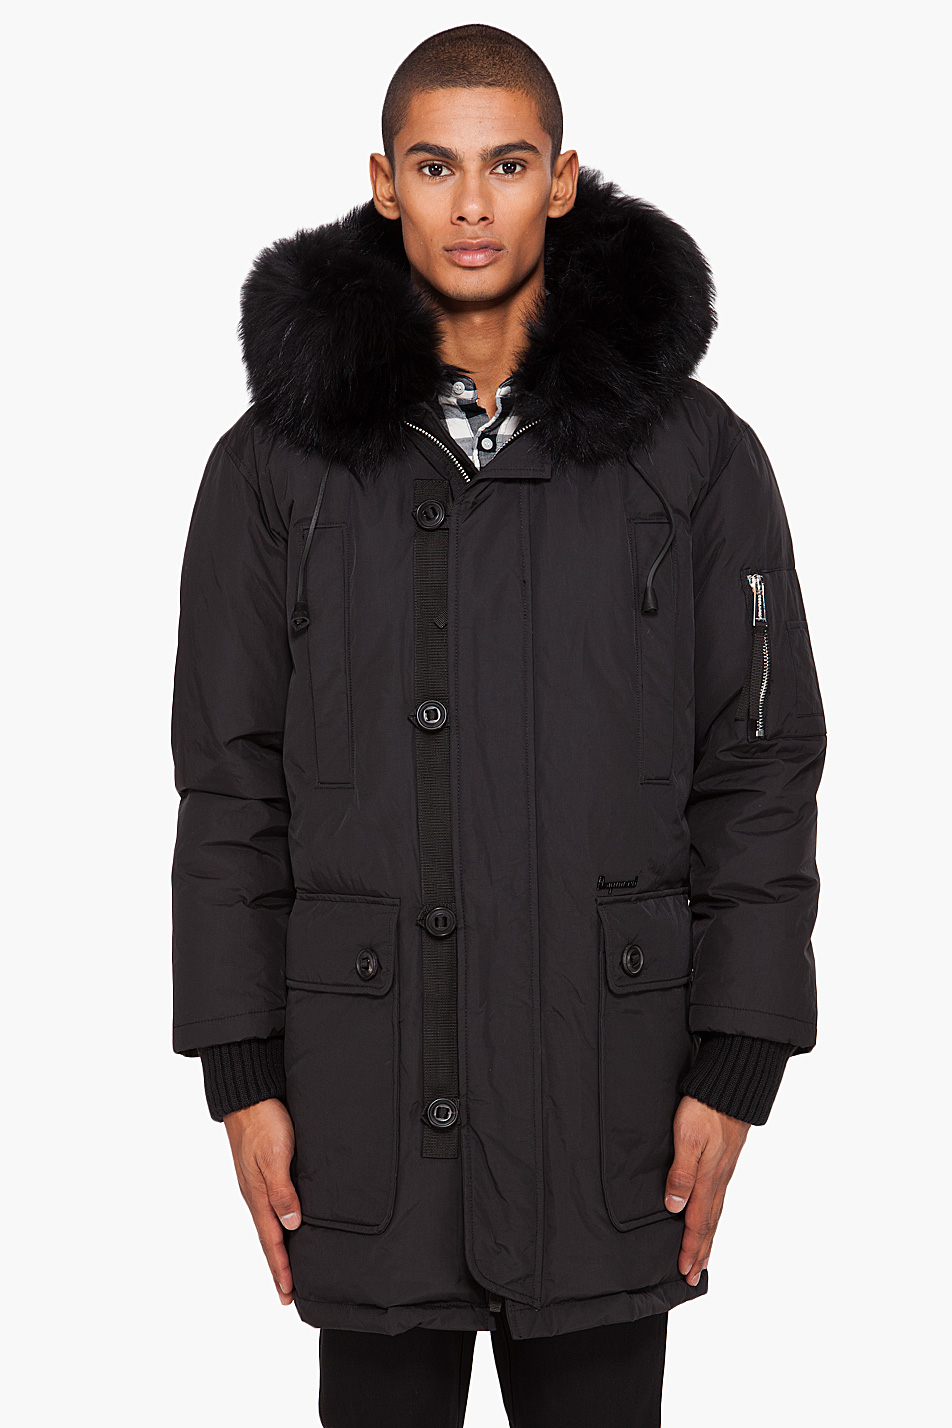 Big Winter Jacket t4FyaJ